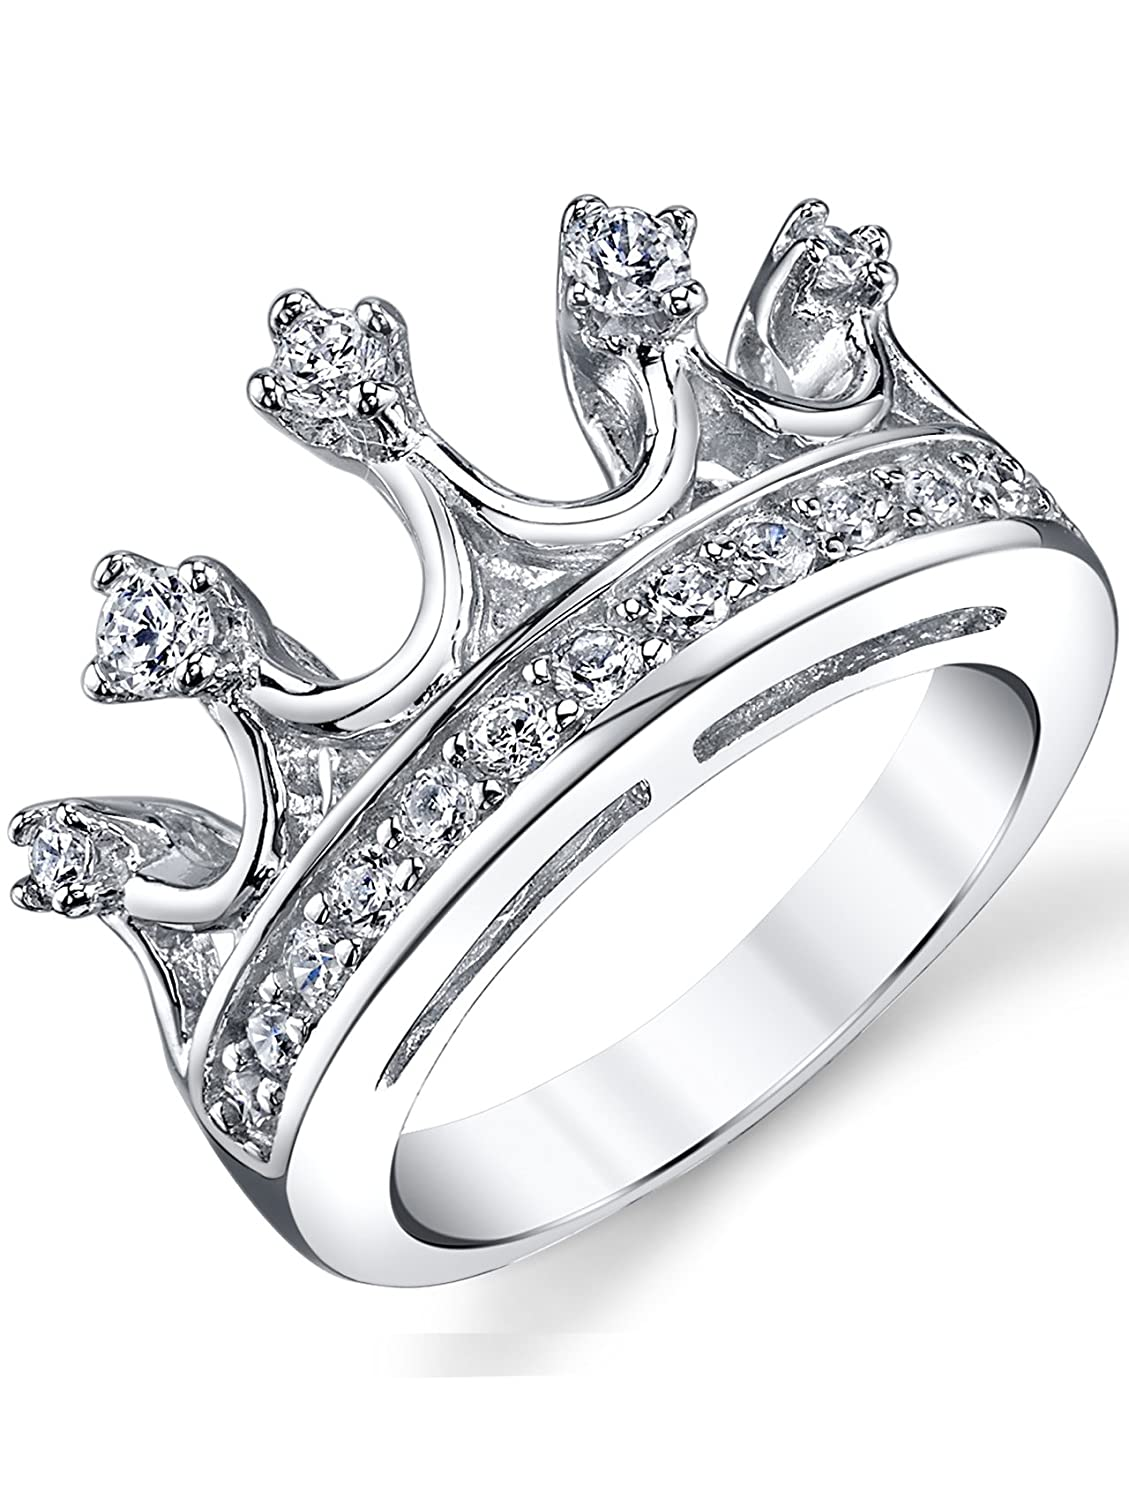 ring buy enduring tiara a chaumet the shape subsampling false of upscale in cut s crop features chaumetpearcutring diamond to scale engagement rings allure an pear phine know collection how bridal jos